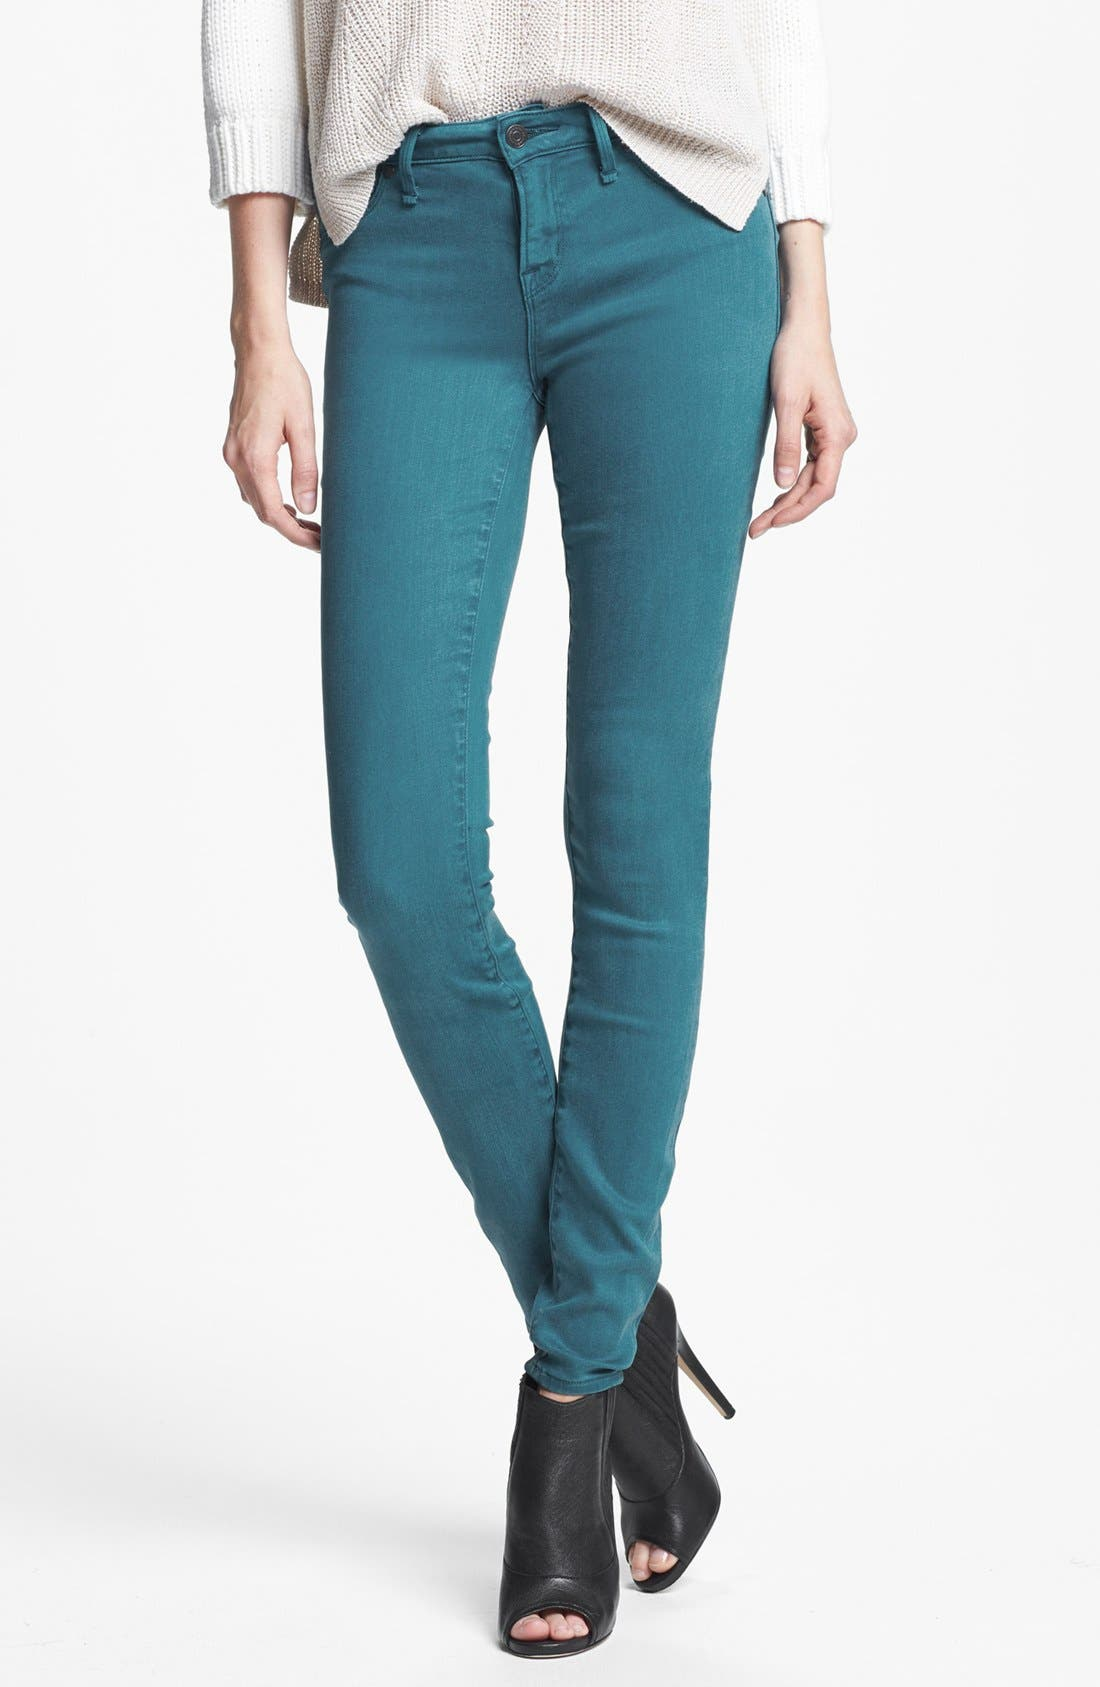 Main Image - MARC BY MARC JACOBS 'Stick' Colored Skinny Stretch Jeans (Horizon Teal)